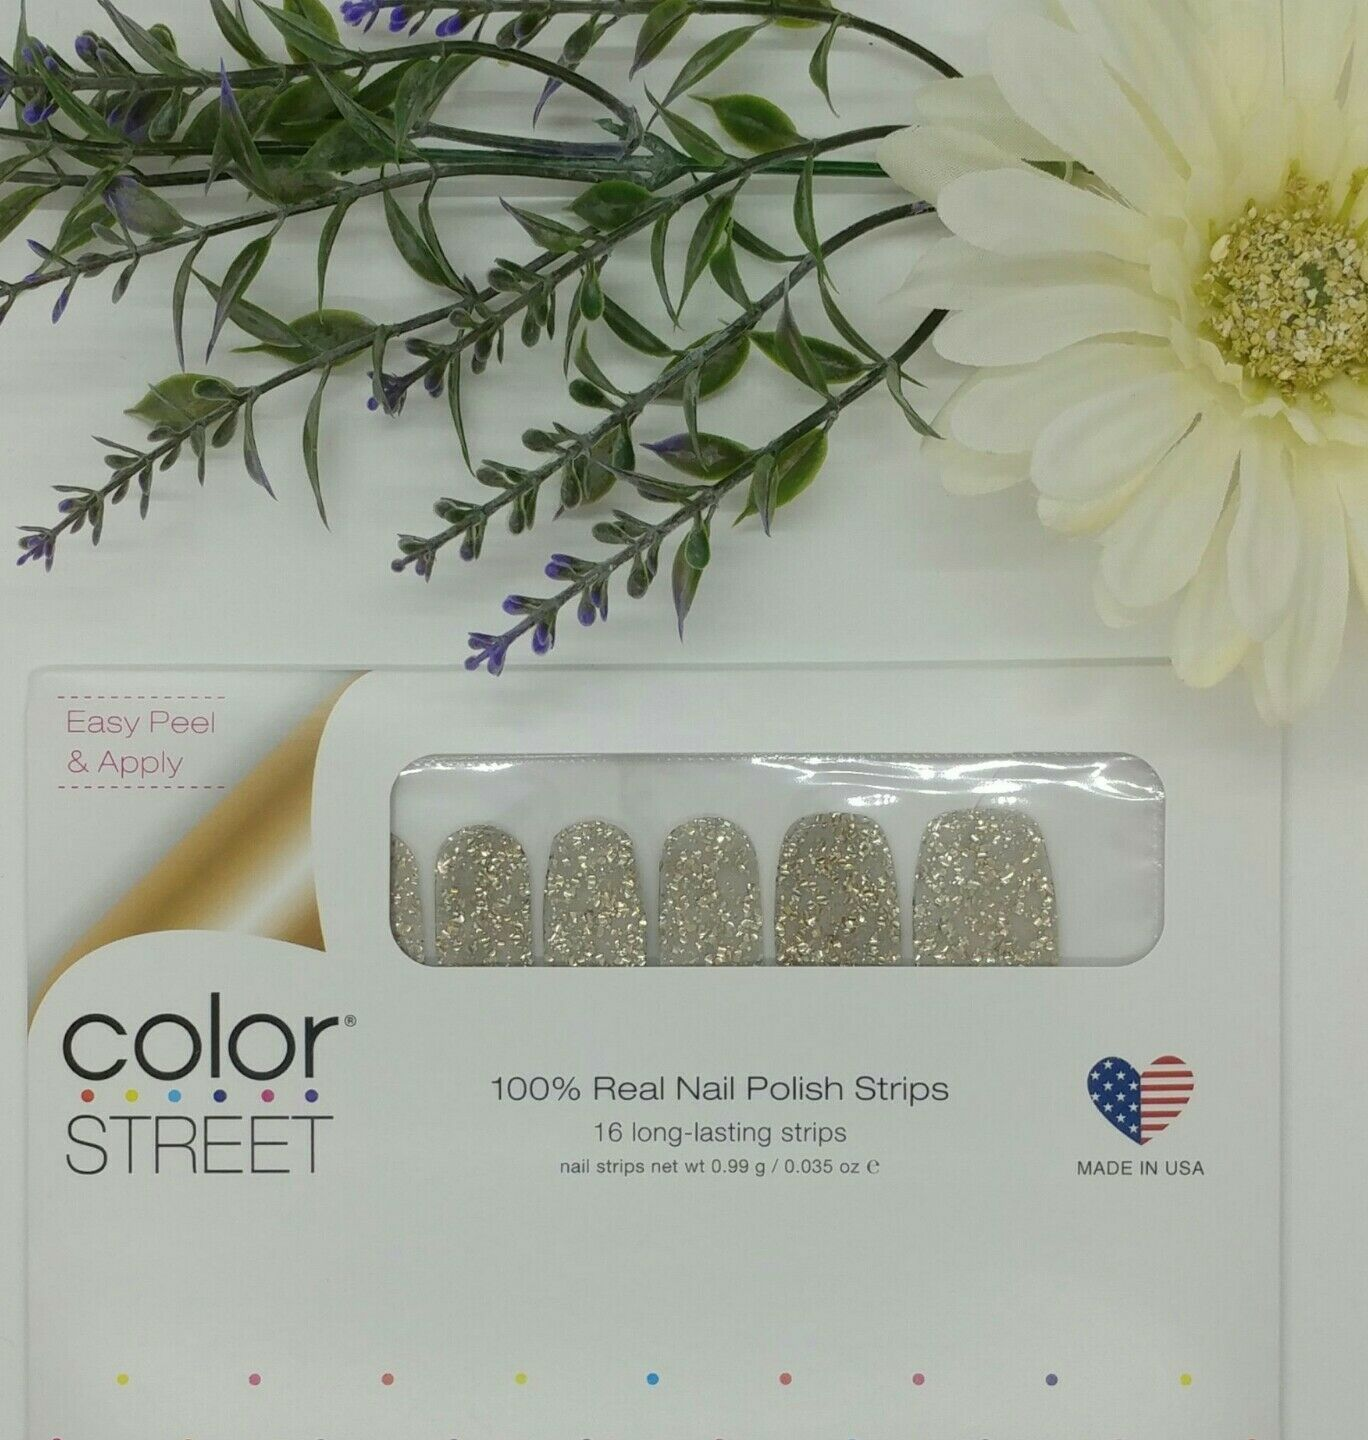 Chica-Gold-Color Street 100% Real Nail Polish Strips -  NIP!